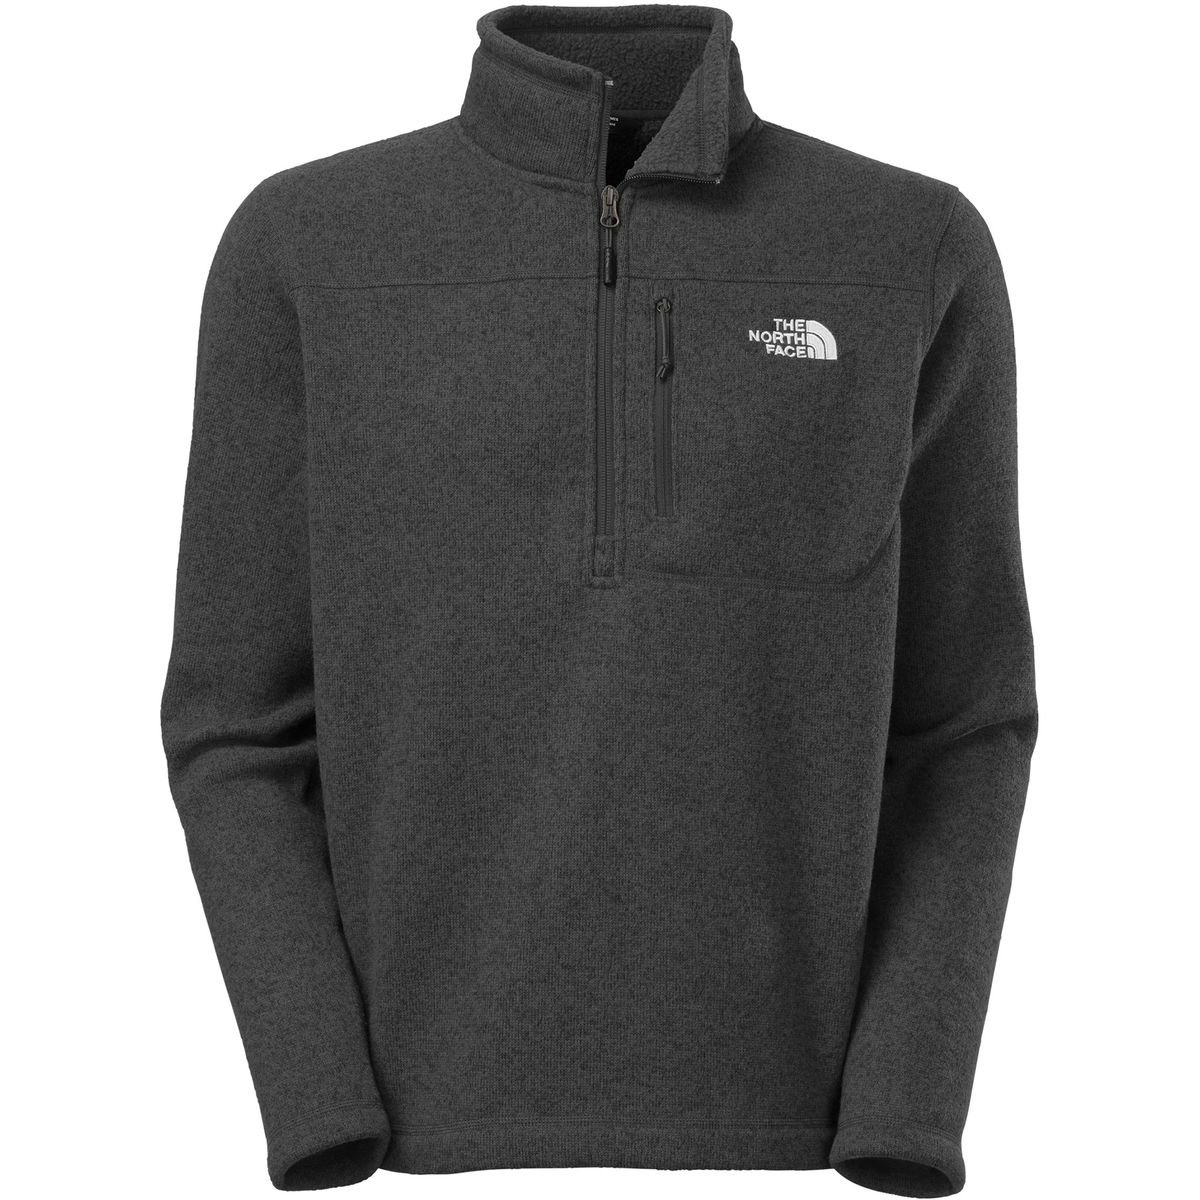 Amazon.com : The North Face Men's Gordon Lyons 1/4 Zip : Sports ...